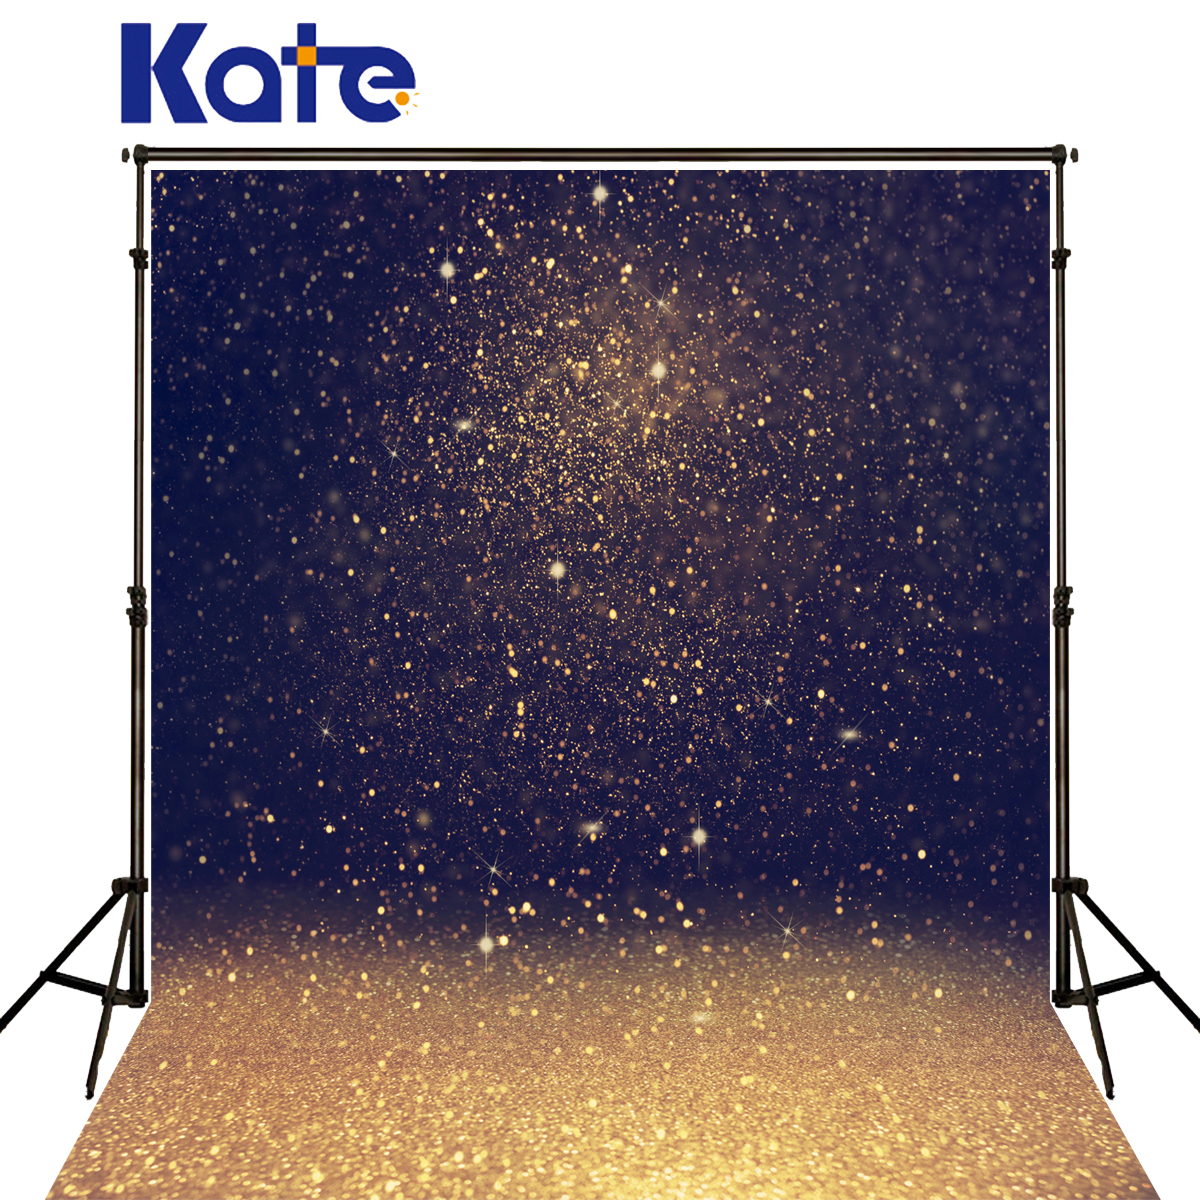 Kate Christmas Backdrop Photography Gold Spot Dream Fundo Fotografico Madeira Lighting Night Fall Background For Photo Shoot kate backdrop for background fundo cask distillery stock3d baby photography backdrop background for photo studio lk 1801